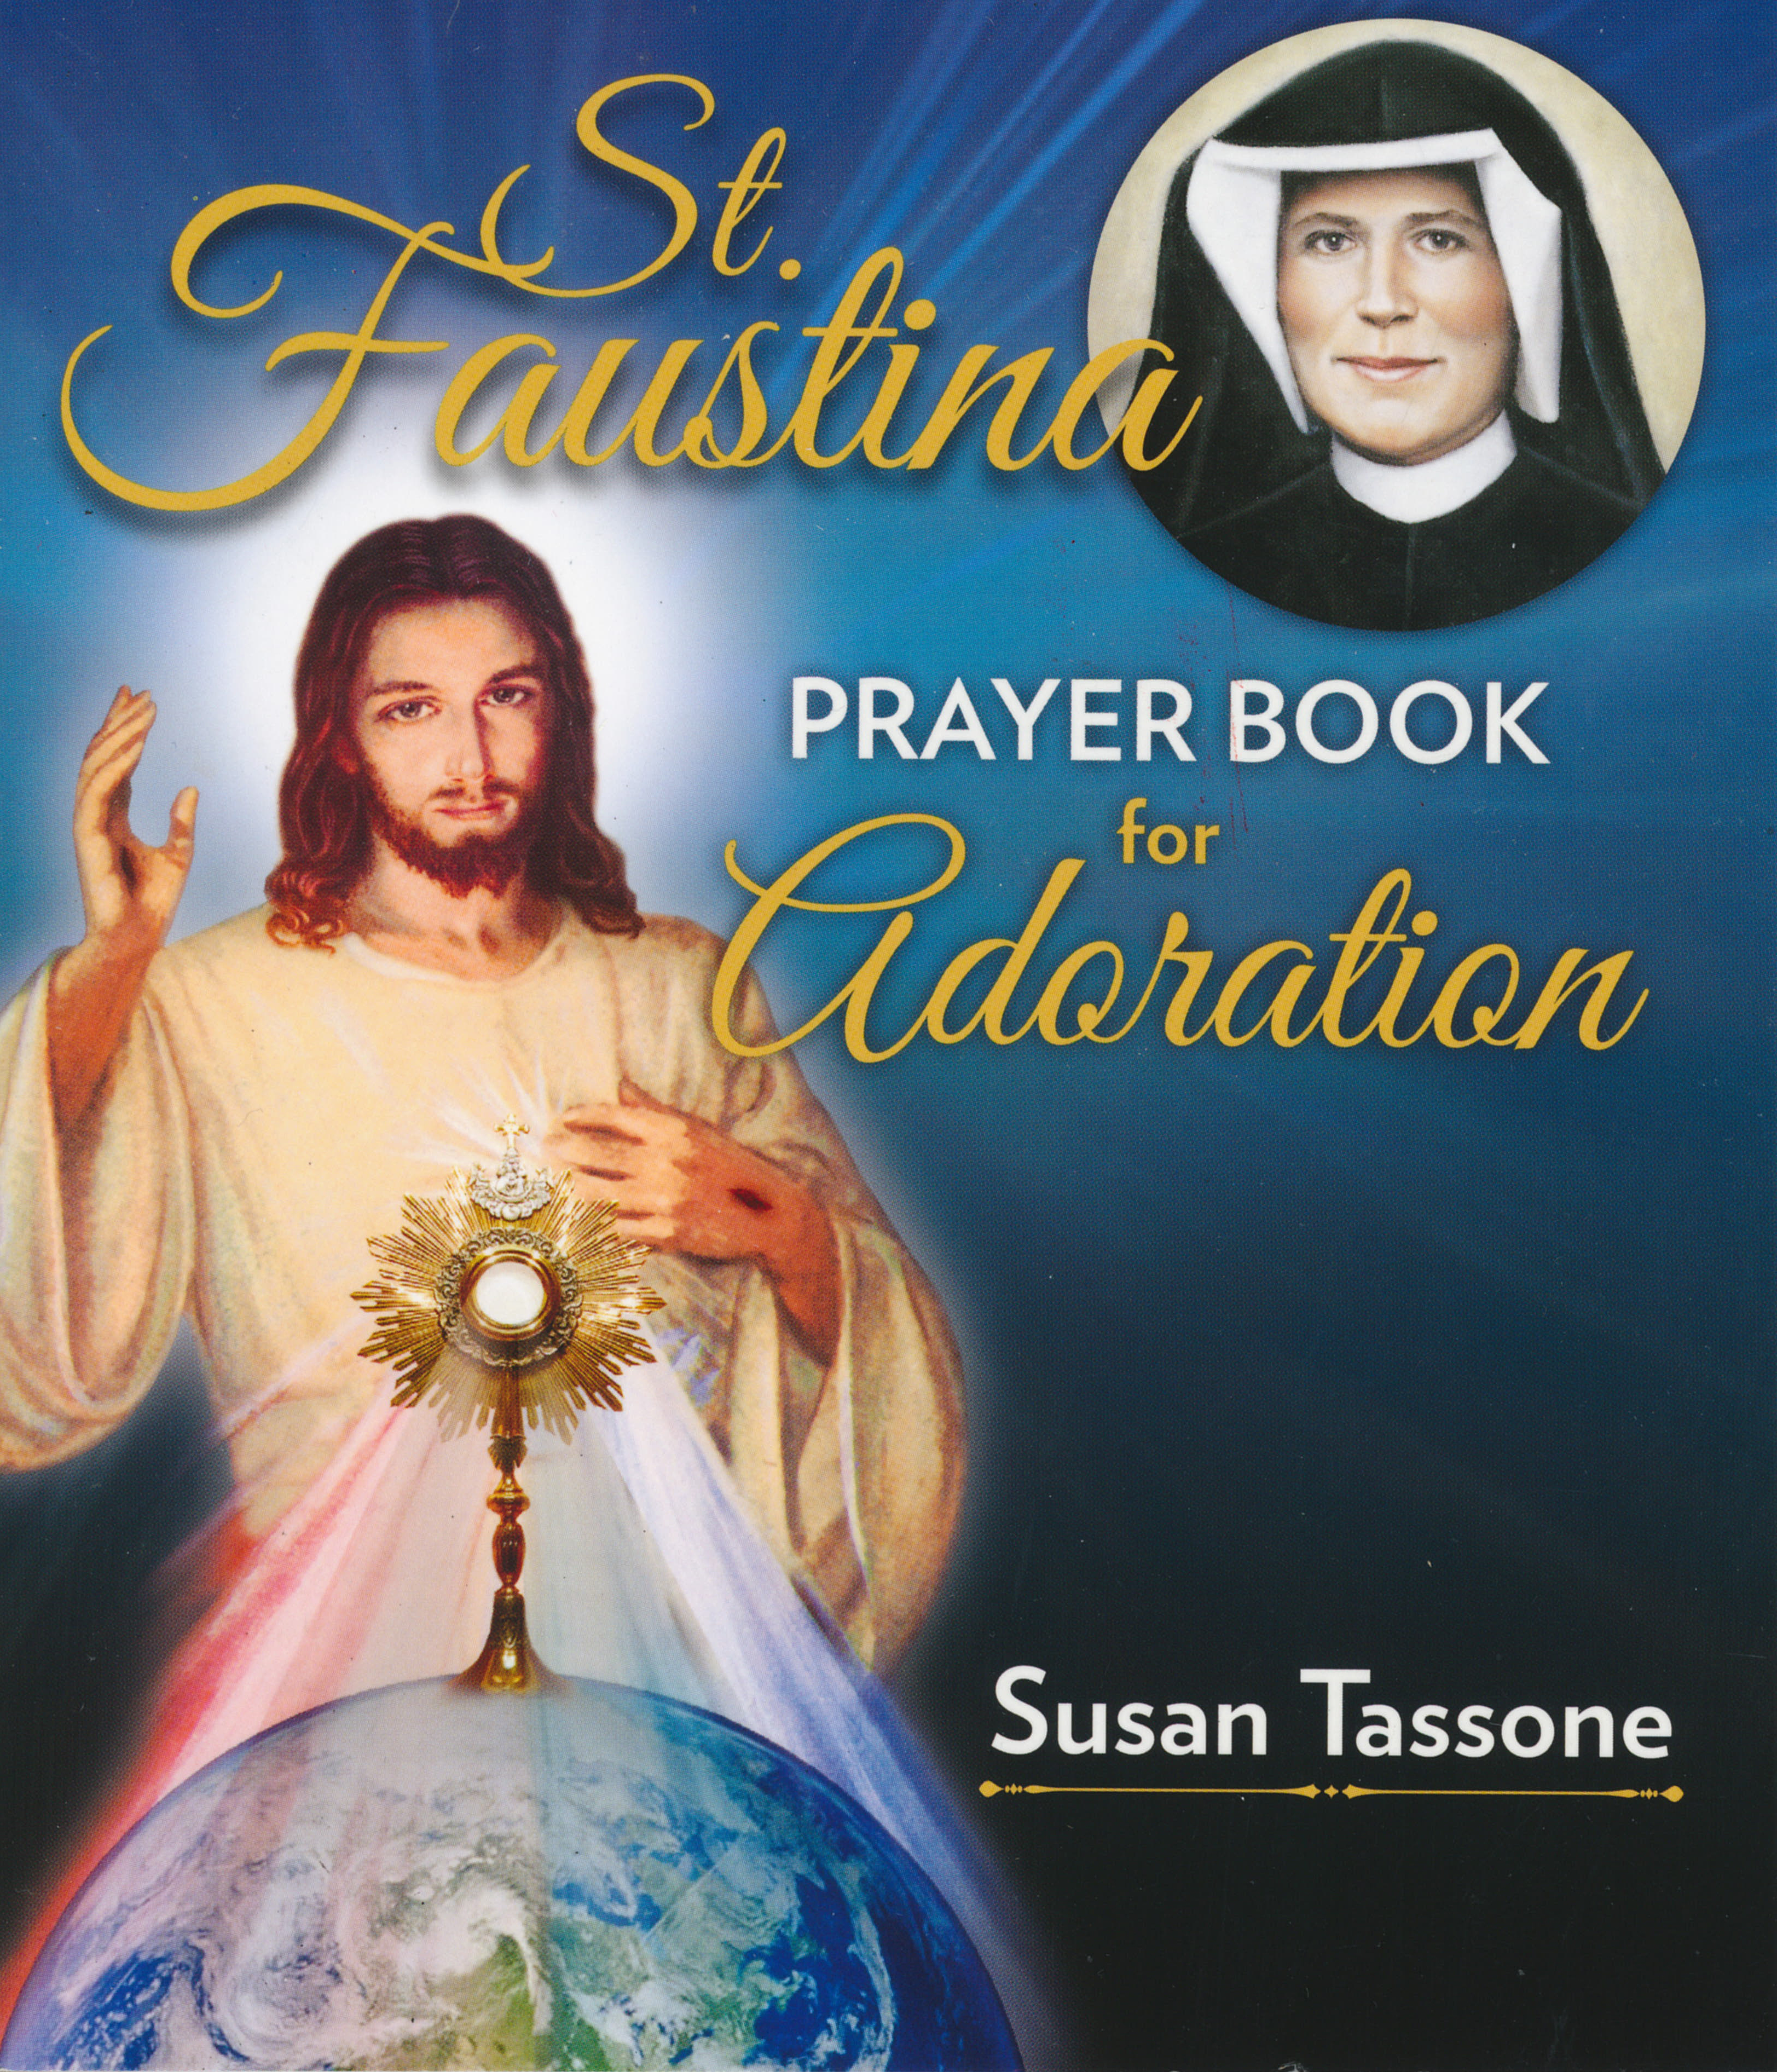 St. Faustine Prayer Book for Adoration by Susan Tassone